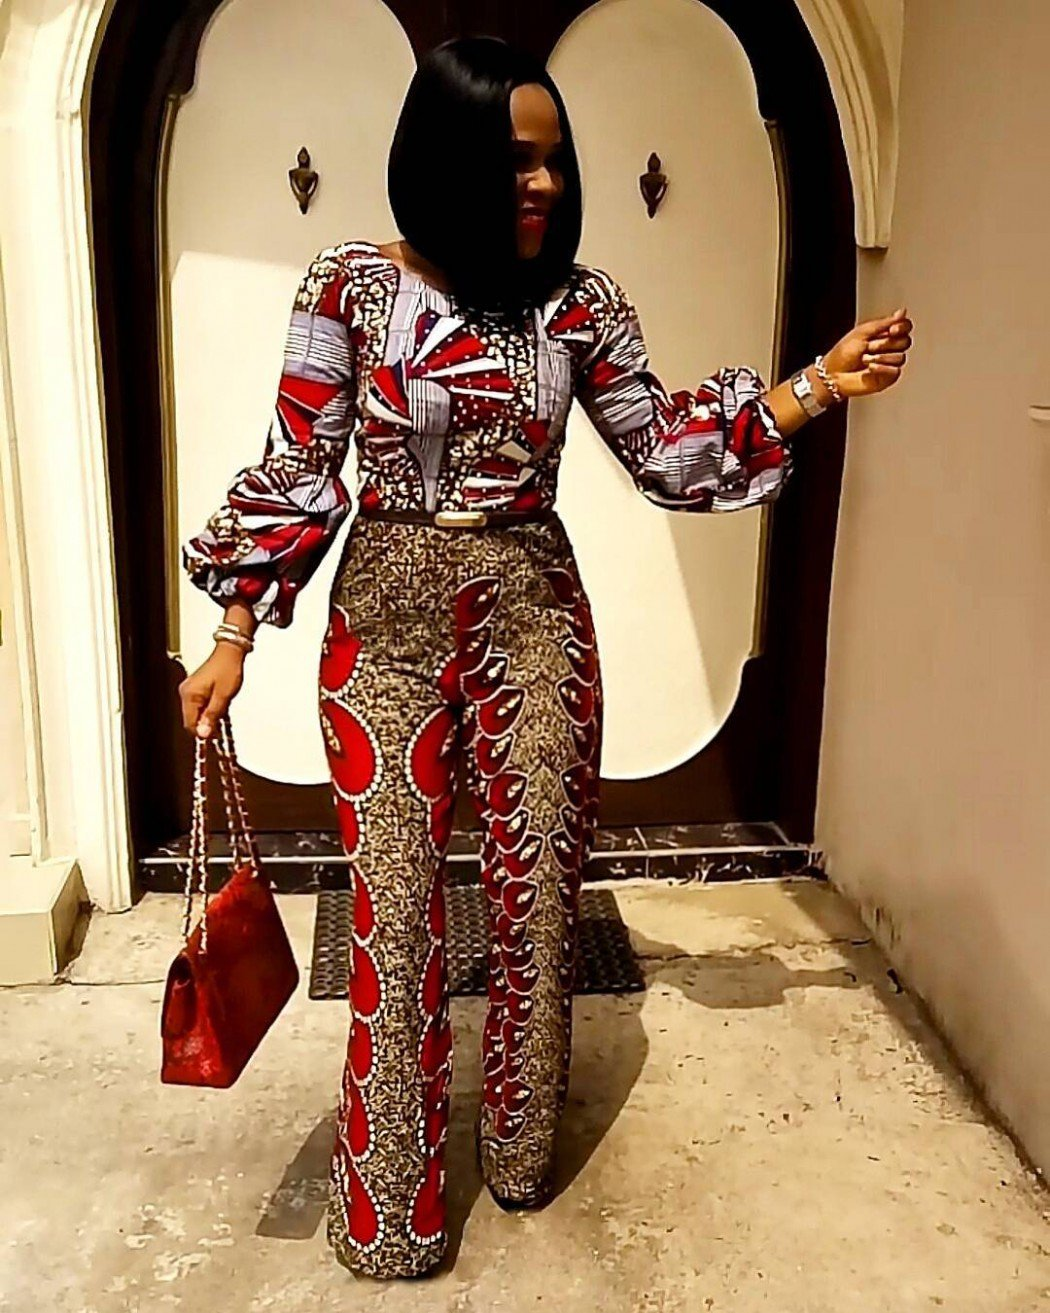 Fgstyle Check Out These Attention Grabbing African Fashion Outfits For Those With Loud Styles